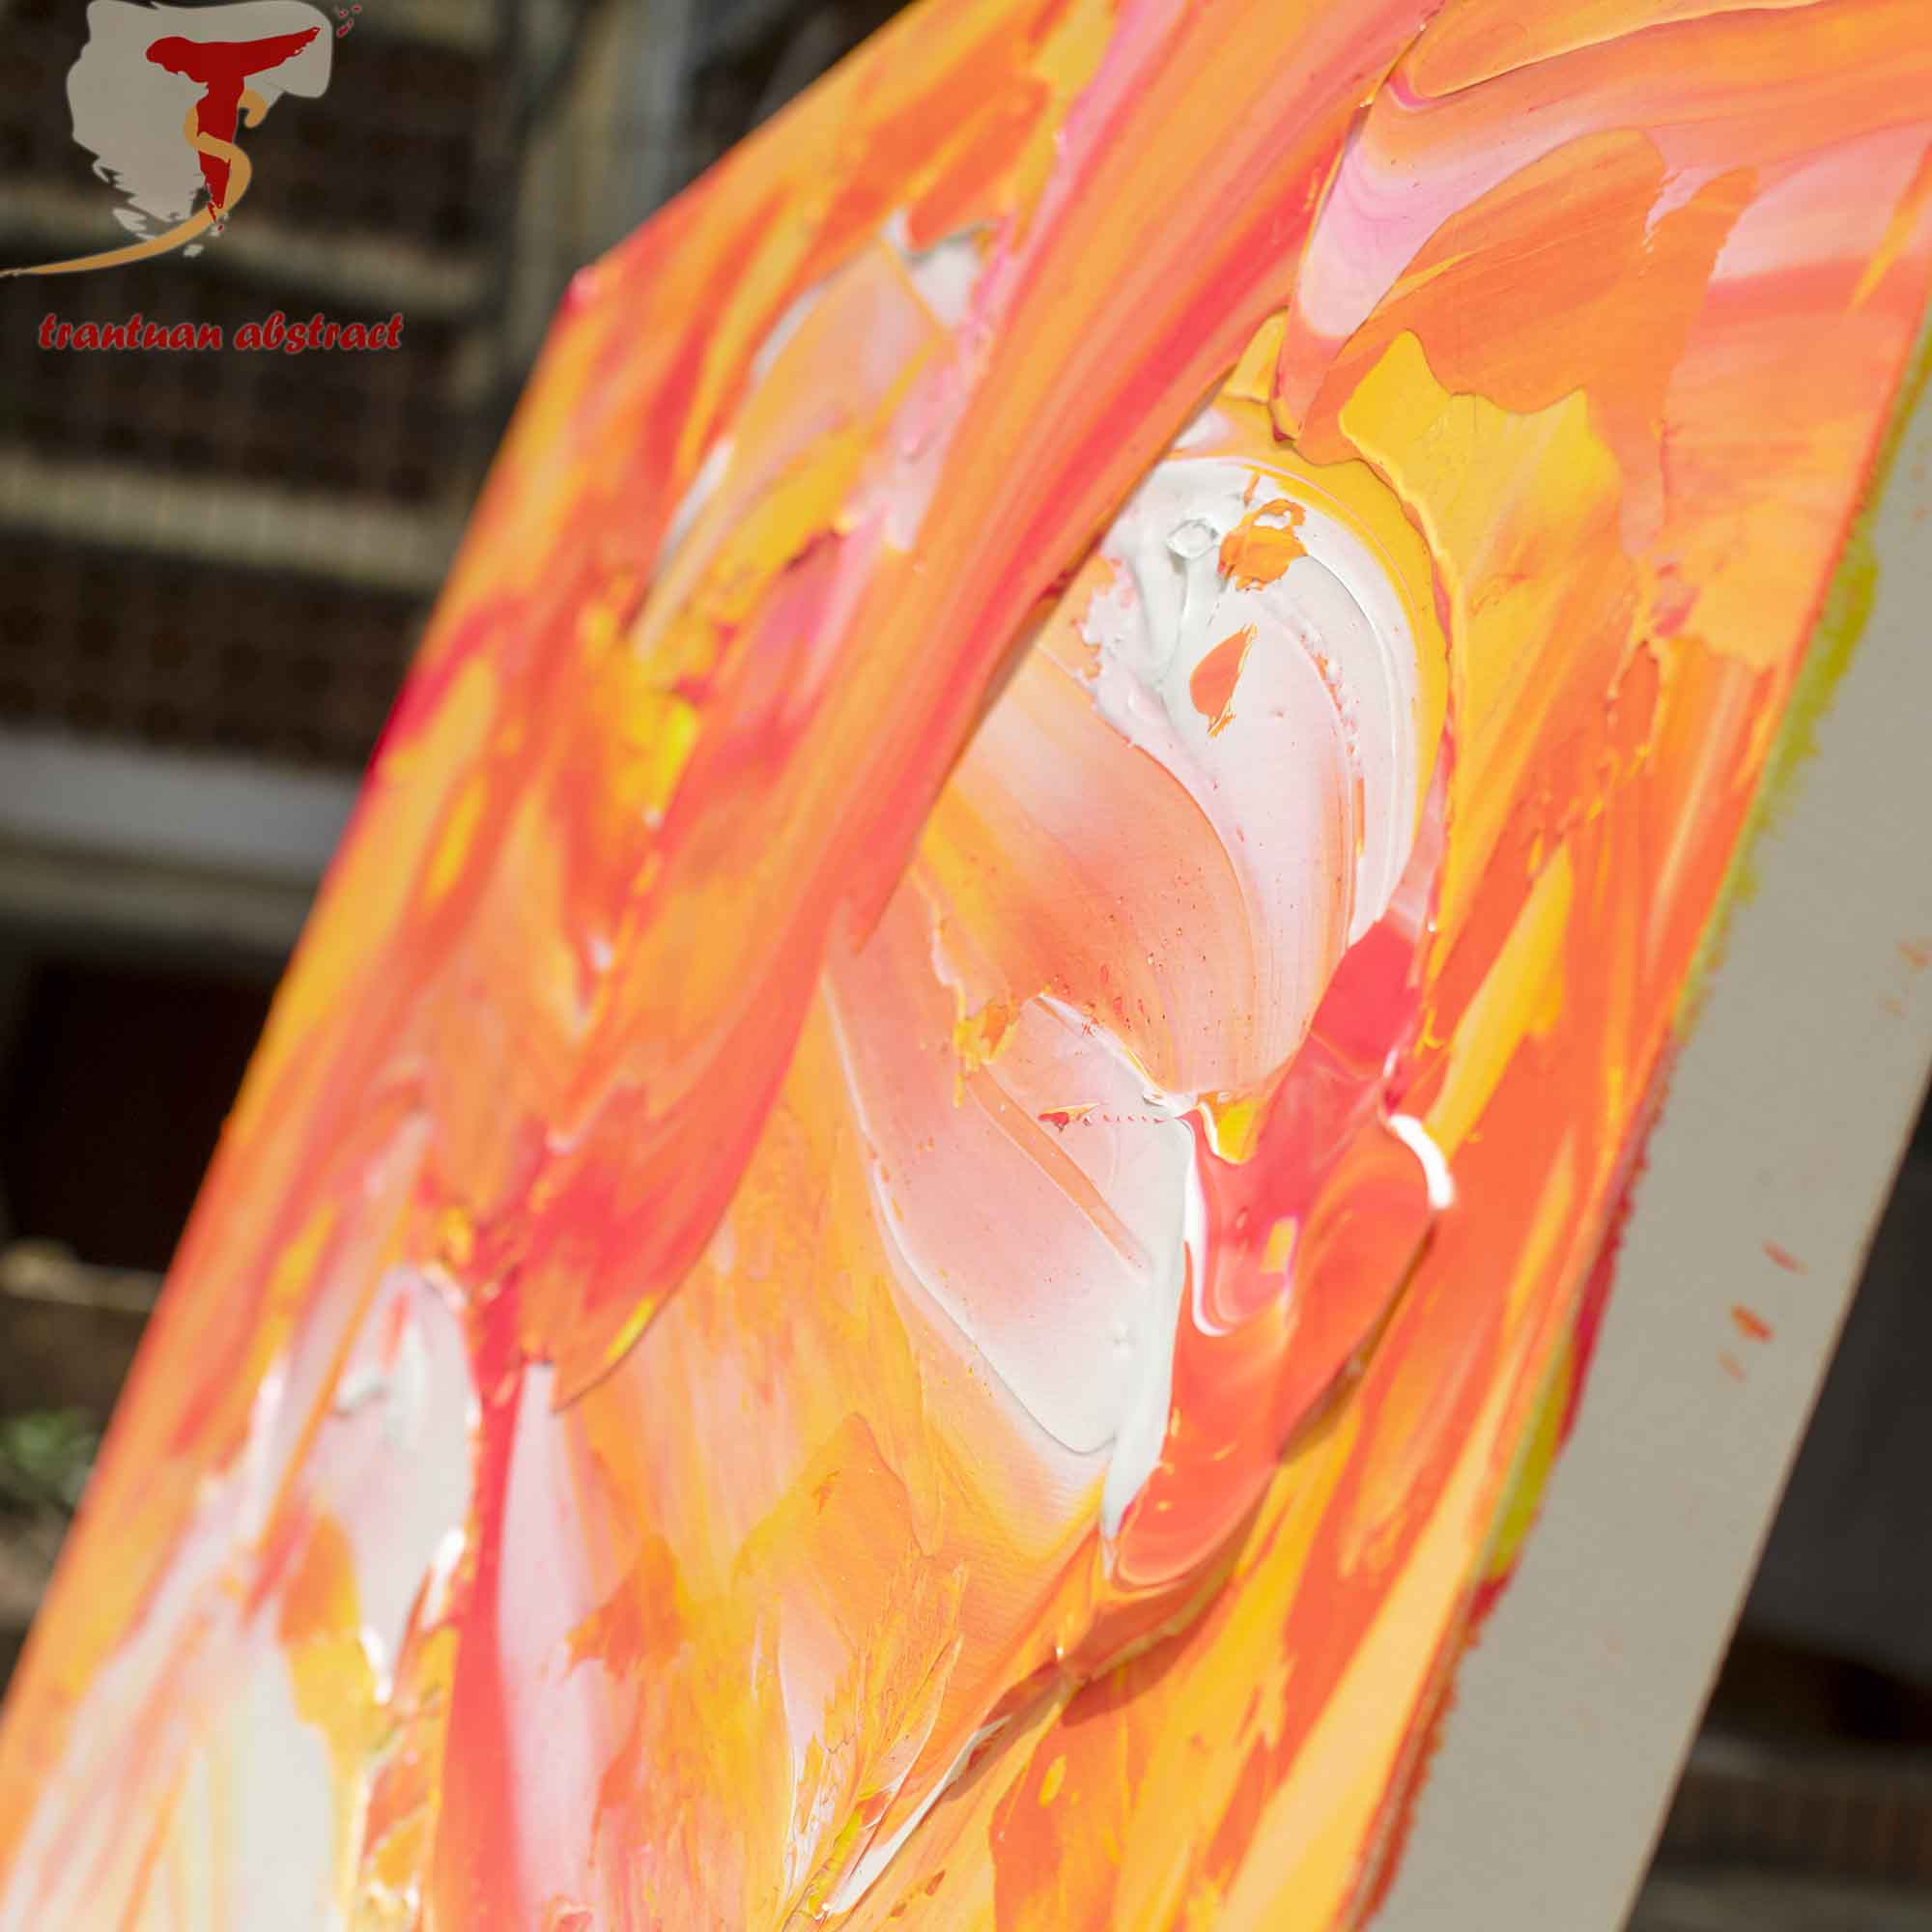 Tran Tuan Abstract Dance of Summer 2021 135 x 80 x 5 cm Acrylic on Canvas Painting Detail